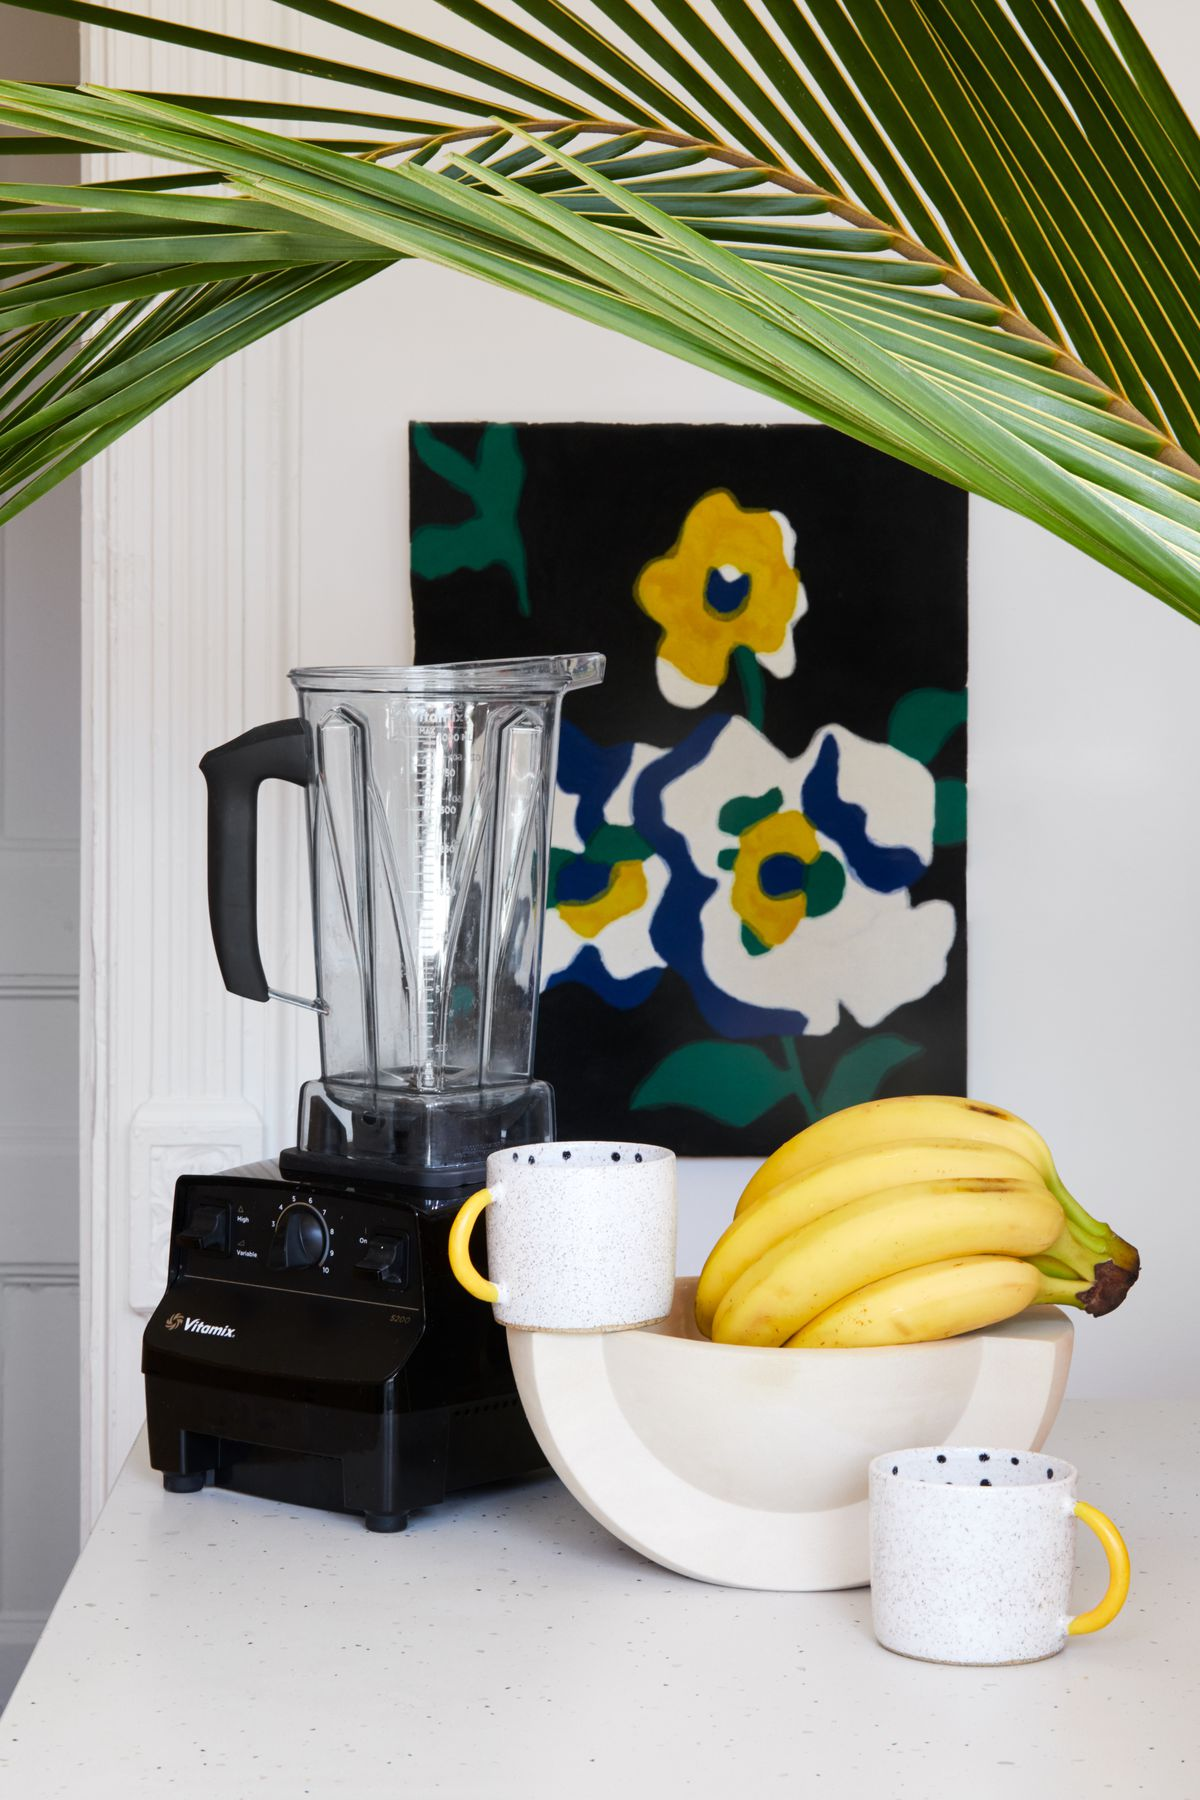 A set of kitchen items including a blender, bowl of fruit, and mugs on a kitchen counter.